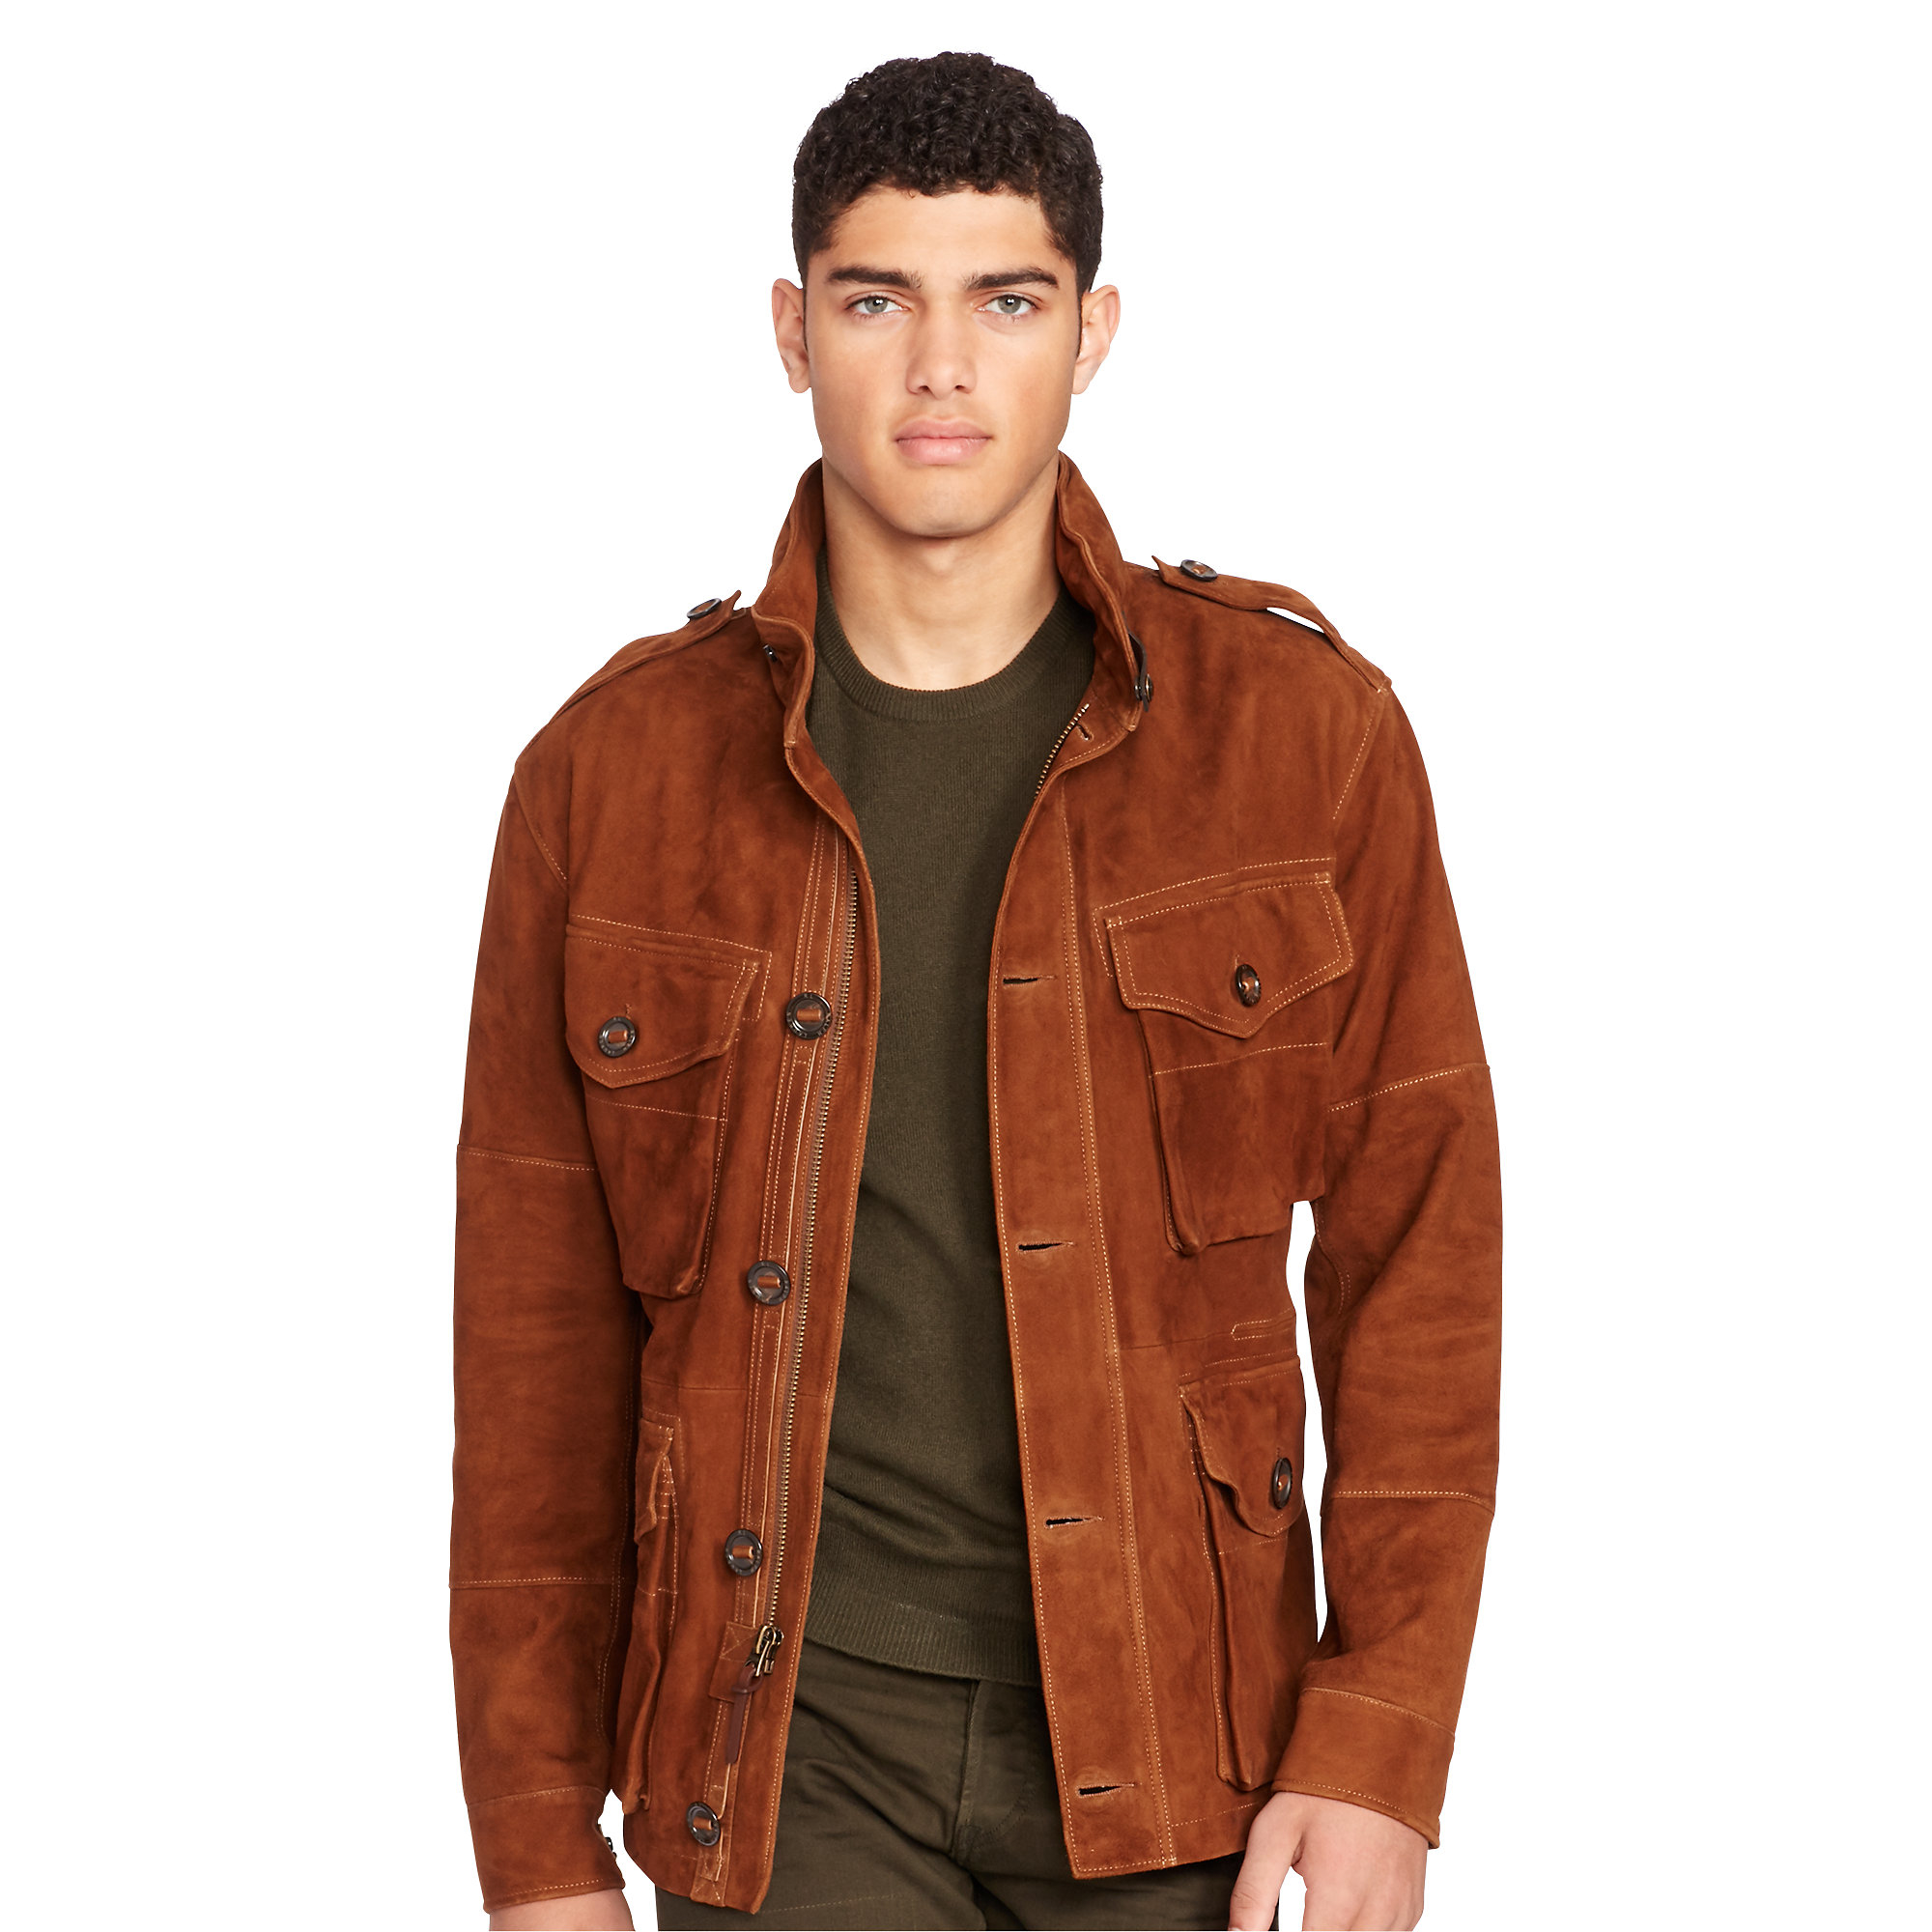 2120d457c release date lyst polo ralph lauren suede combat jacket in brown for men  a8245 d8a3a